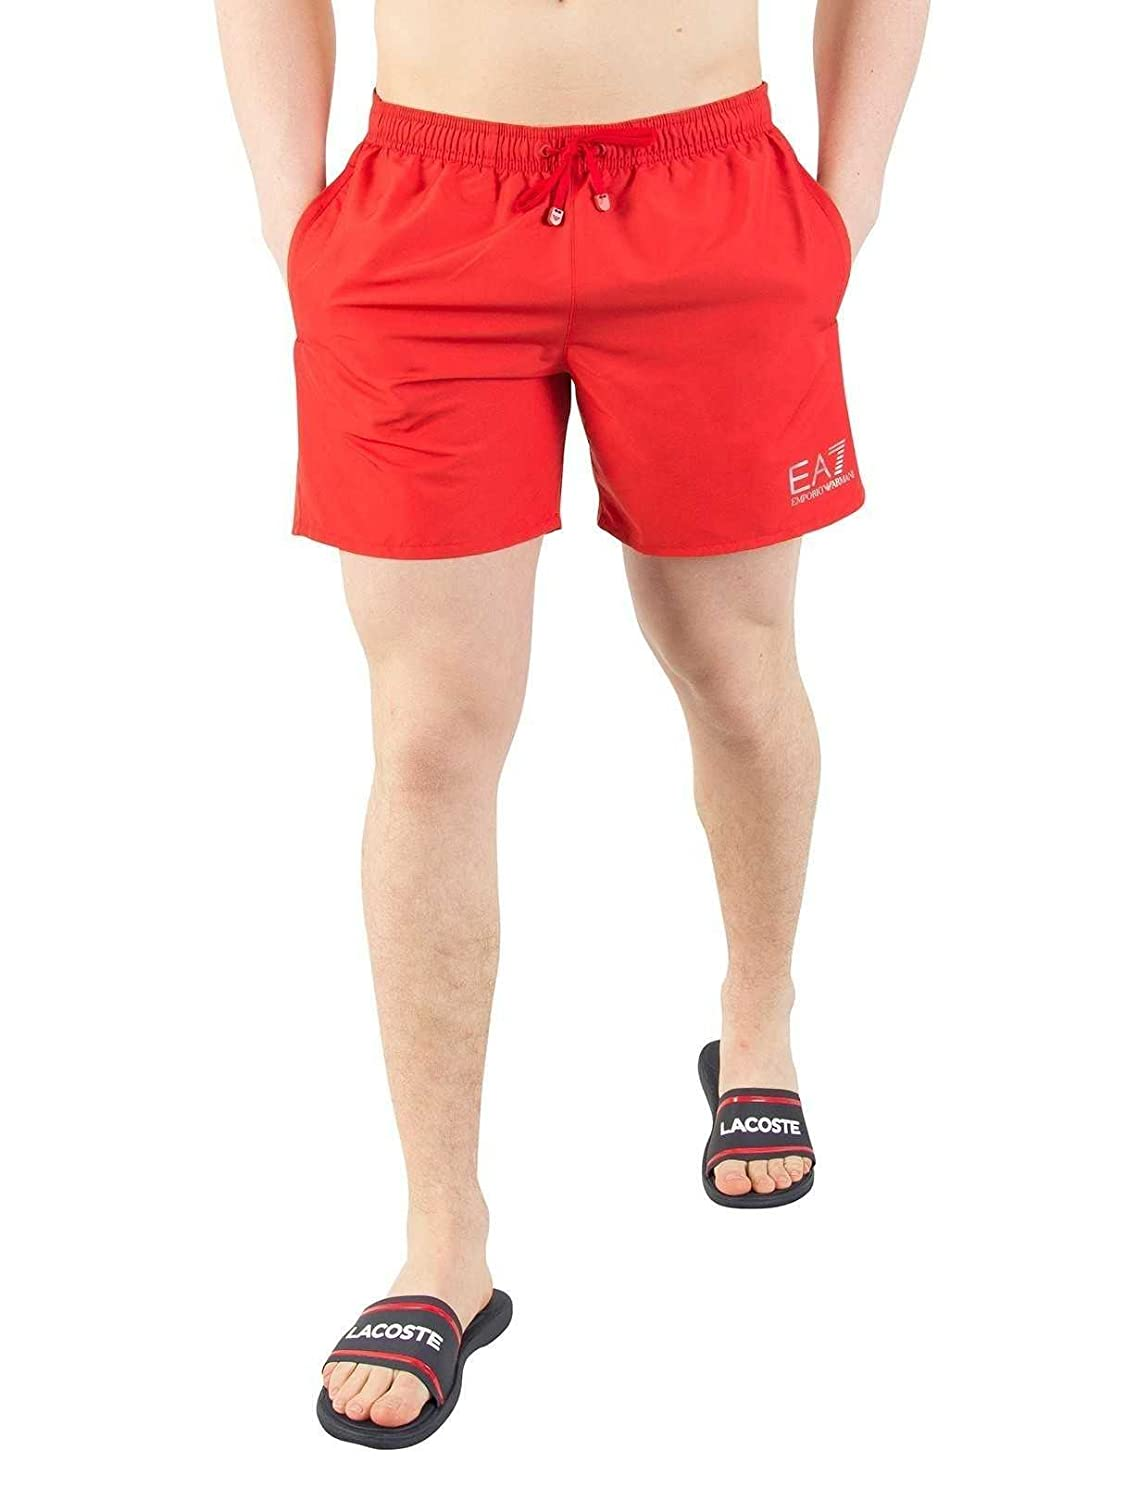 Emporio Armani EA7 Men's Swim Shorts, Red/Silver